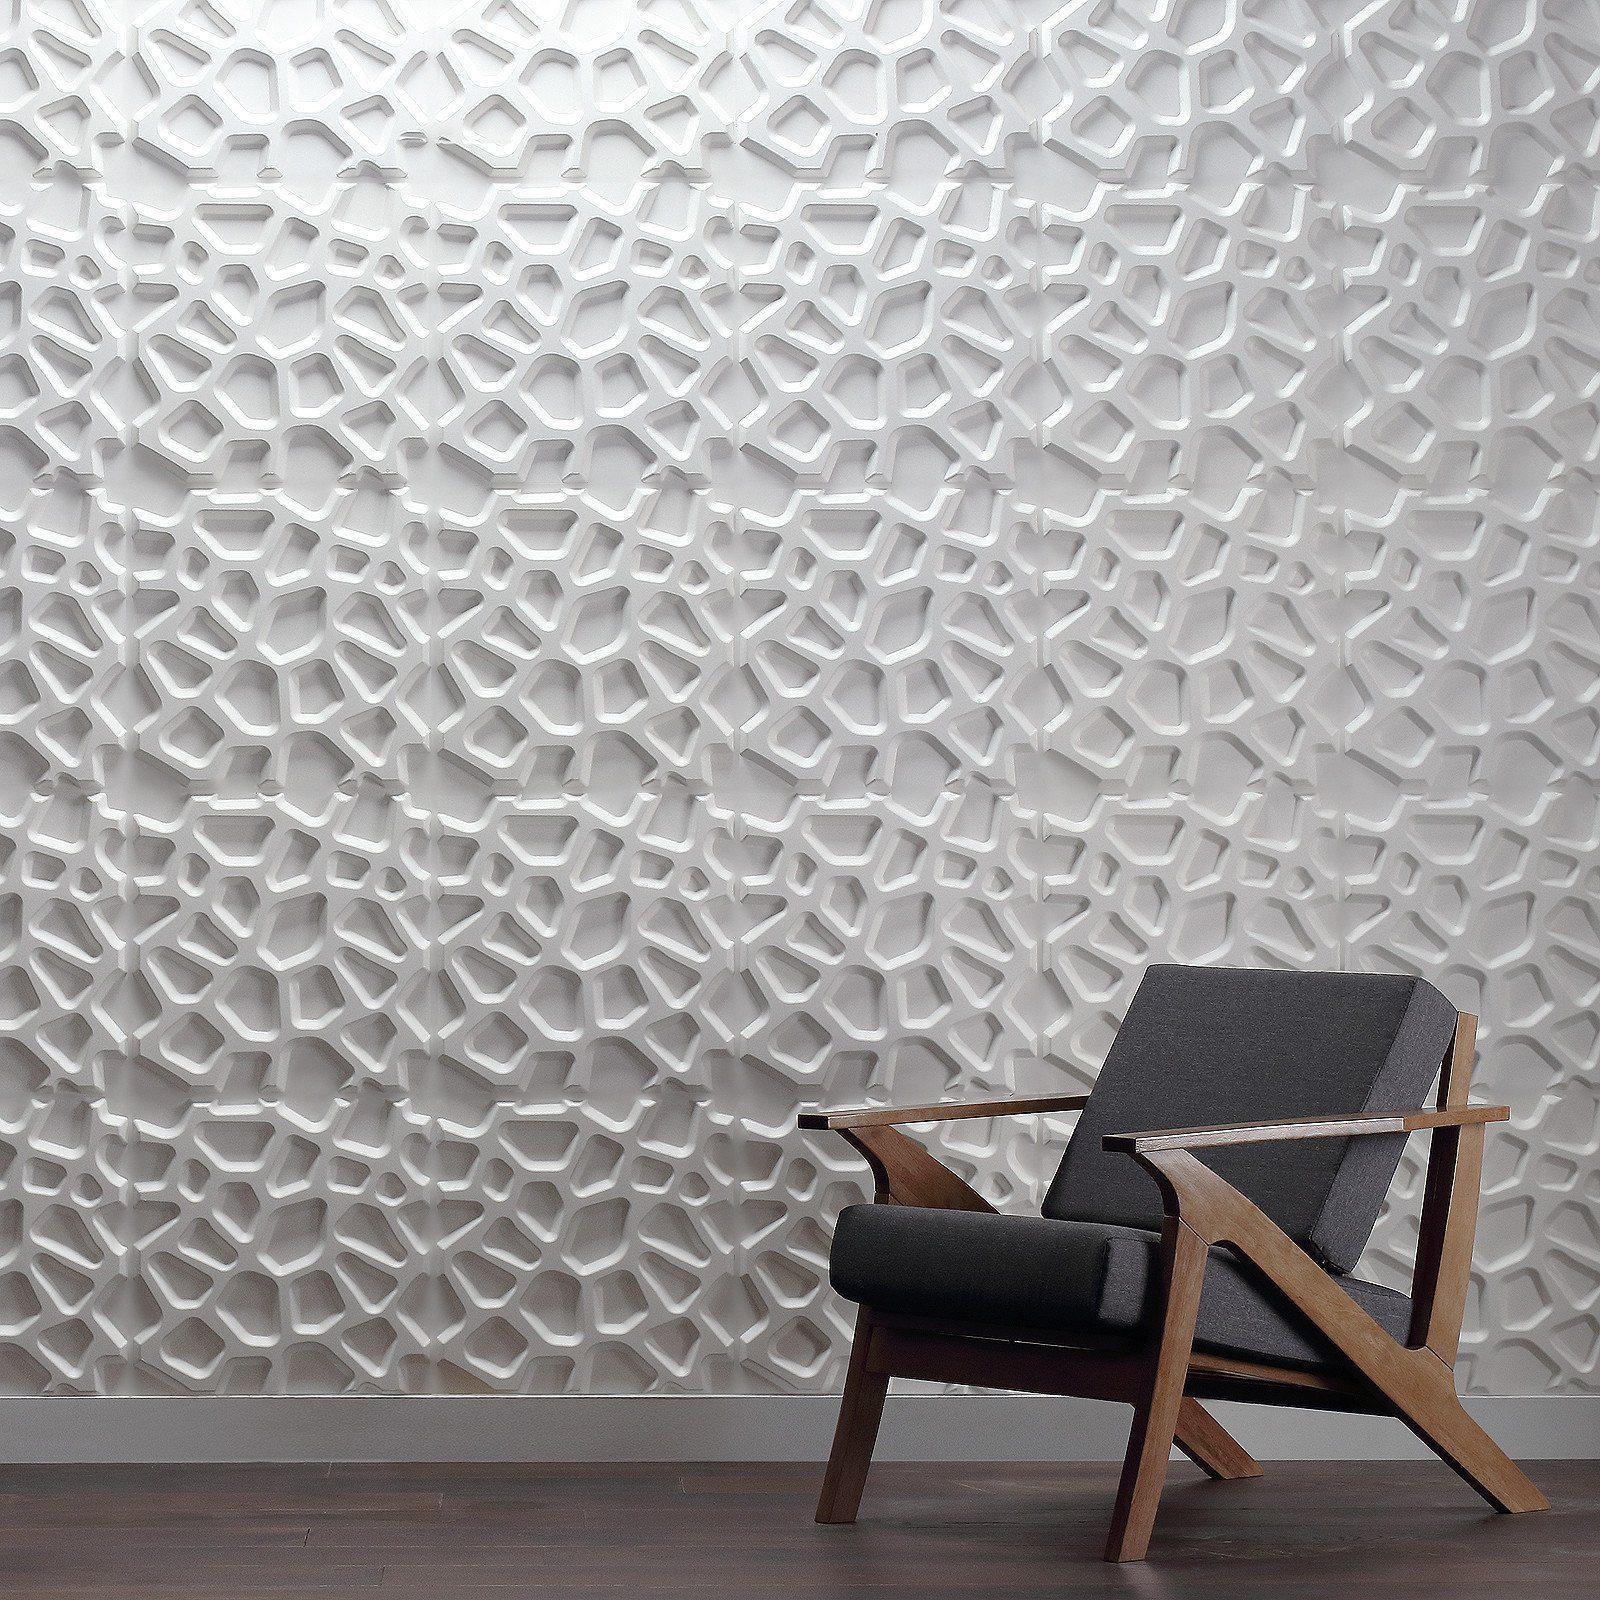 Flower 3d Wall Panels : Modern furnishings d wall panels dimensional walls